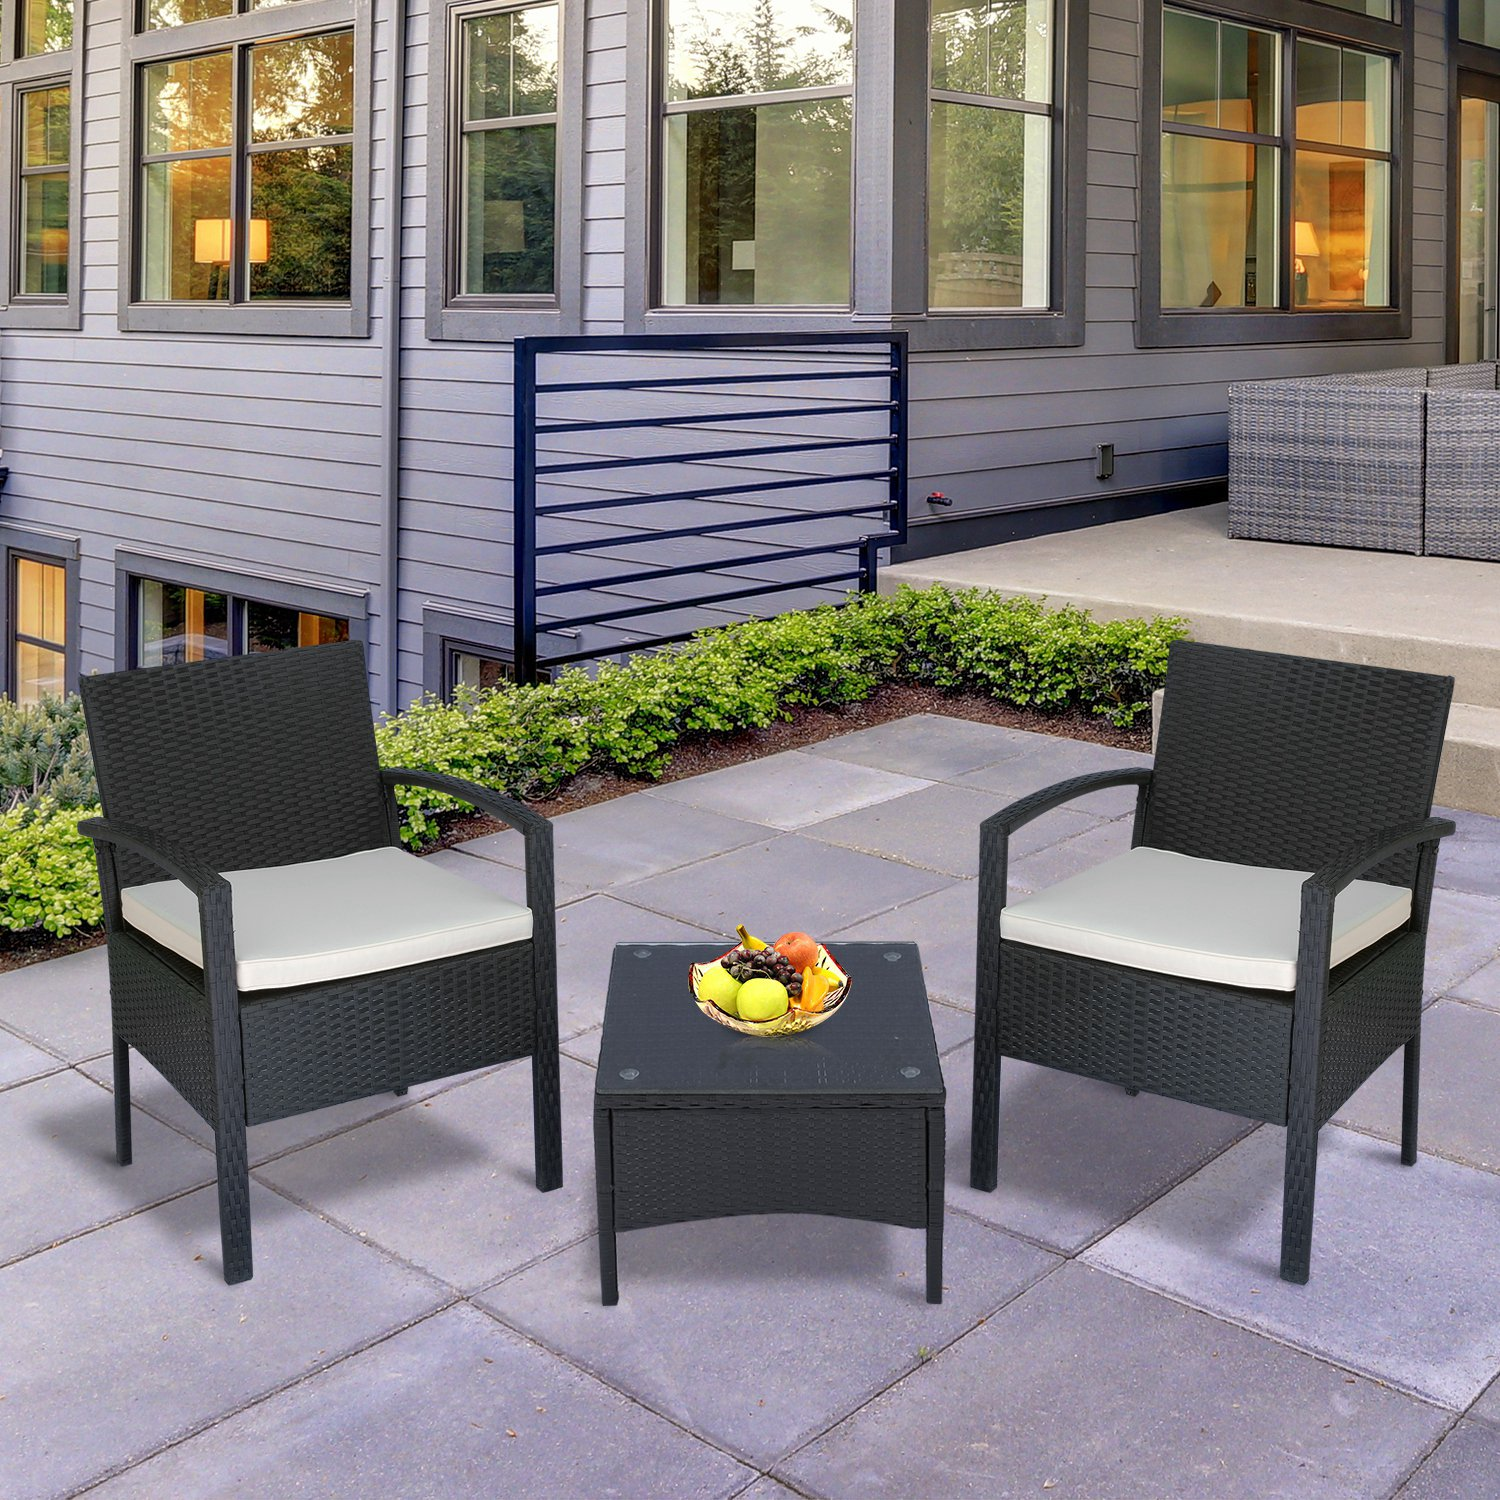 Outsunny 12pcs Rattan Wicker Coffee Set Garden Chairs and Table Set Outdoor  Furniture All Weather w/ Cushion Black